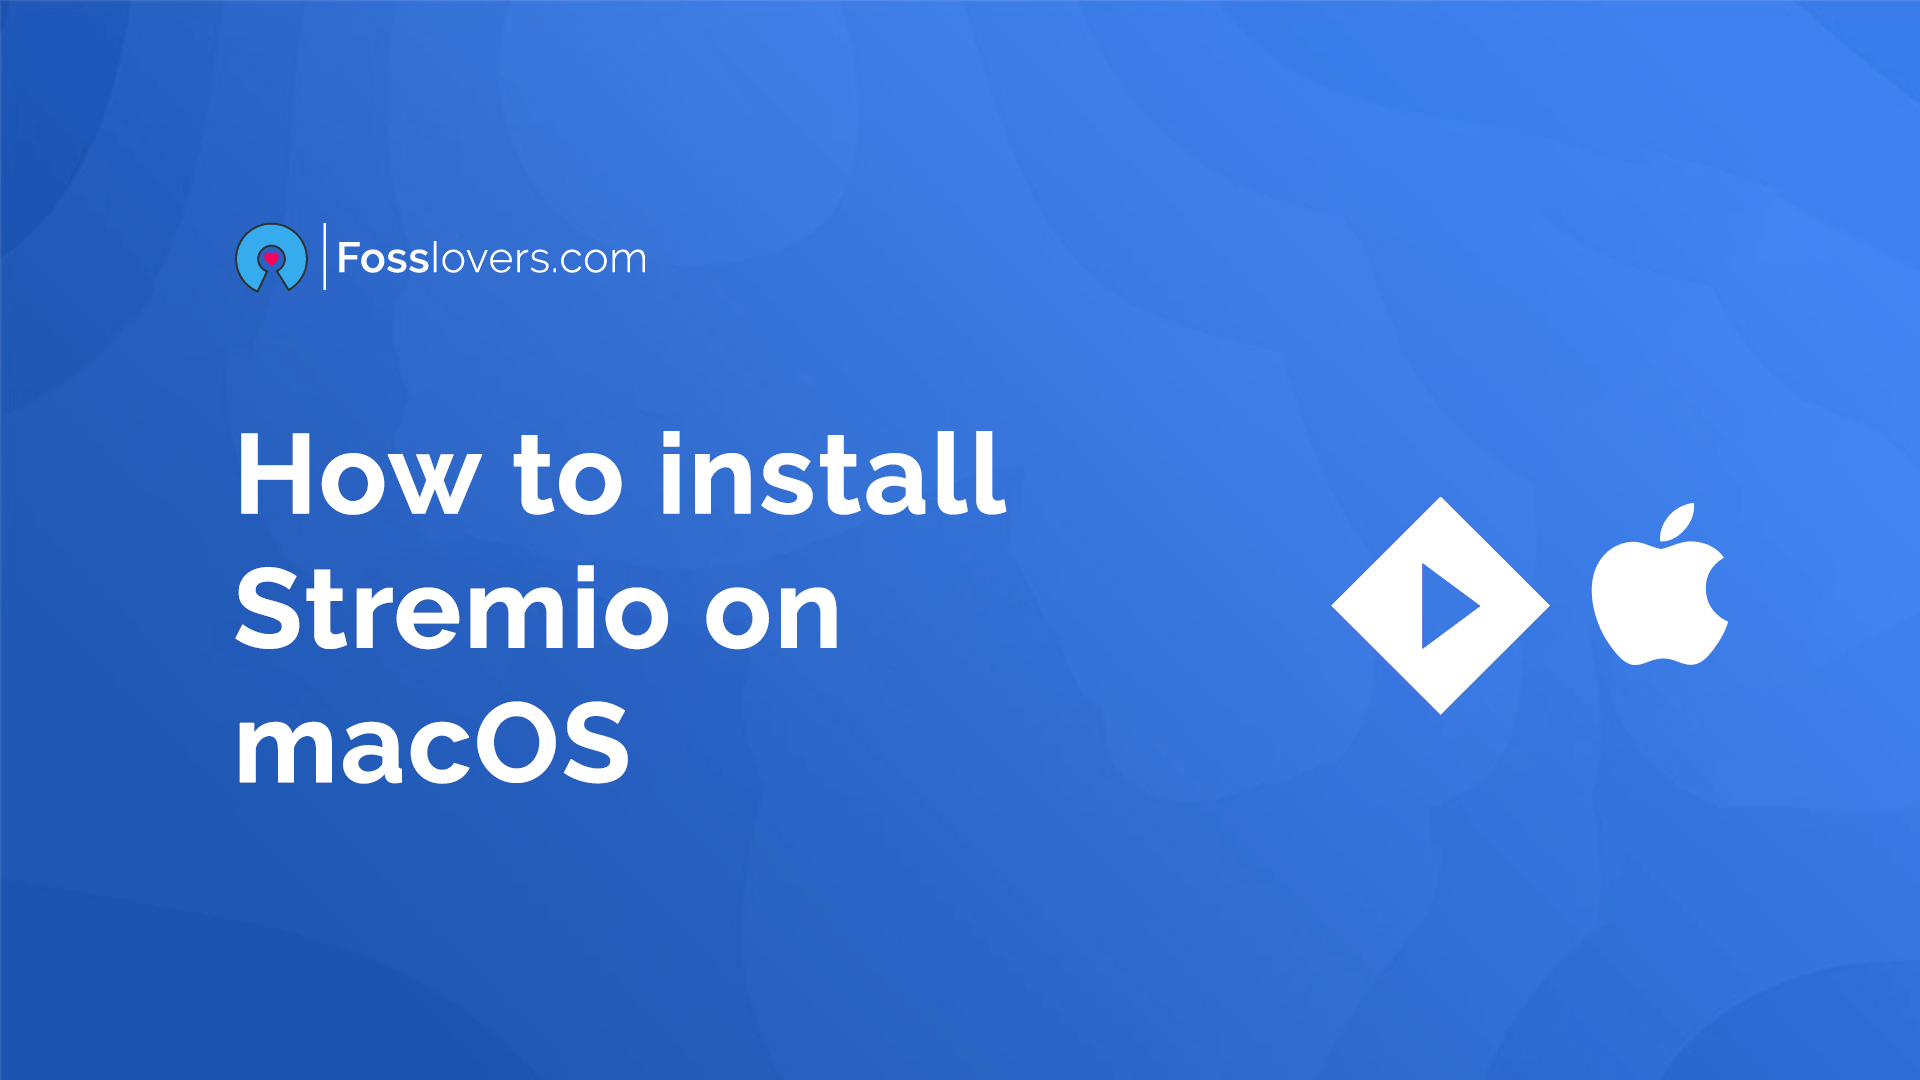 How to install Stremio on macOS